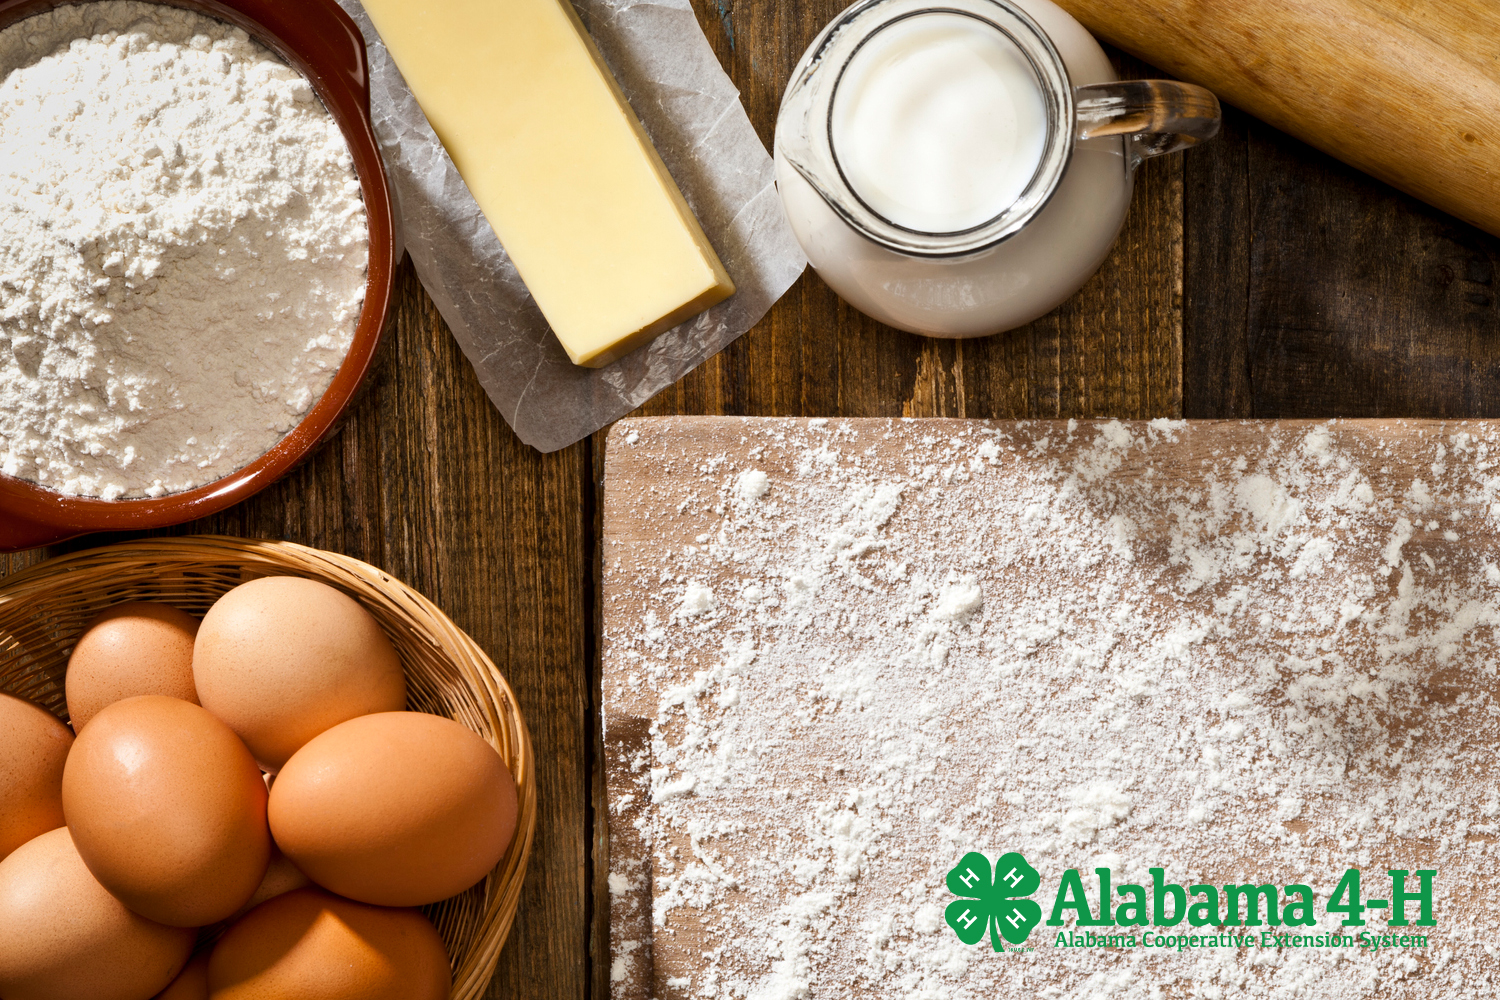 Alabama 4-H Bake Off; image of eggs, flour, butter for baking